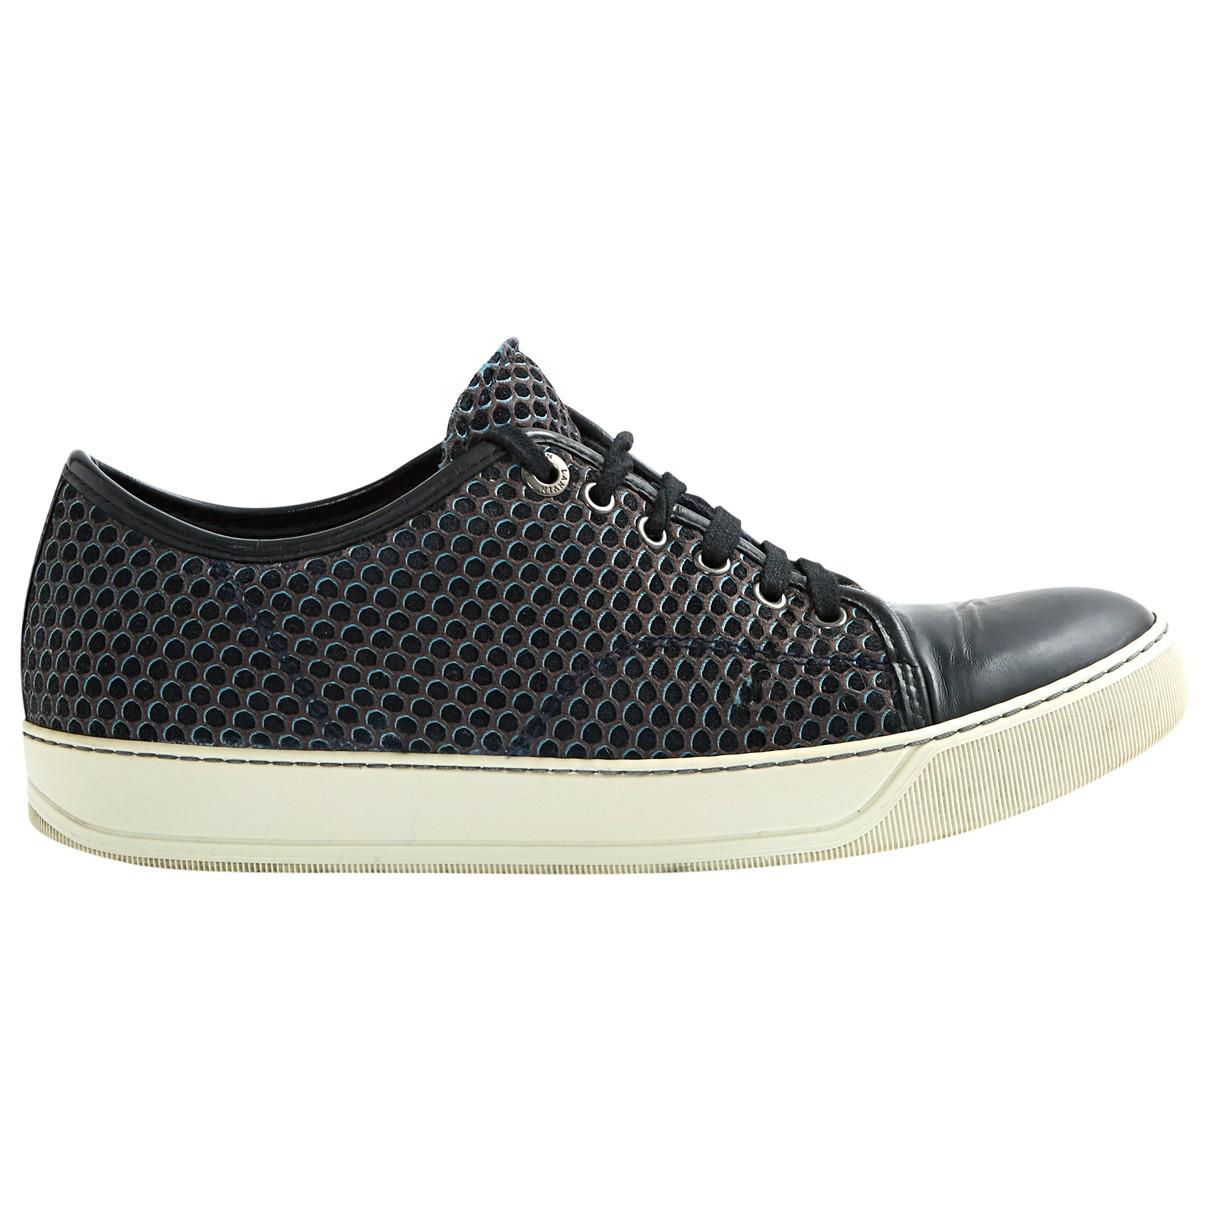 Pre-owned - Leather low trainers Lanvin kcMf2fFD